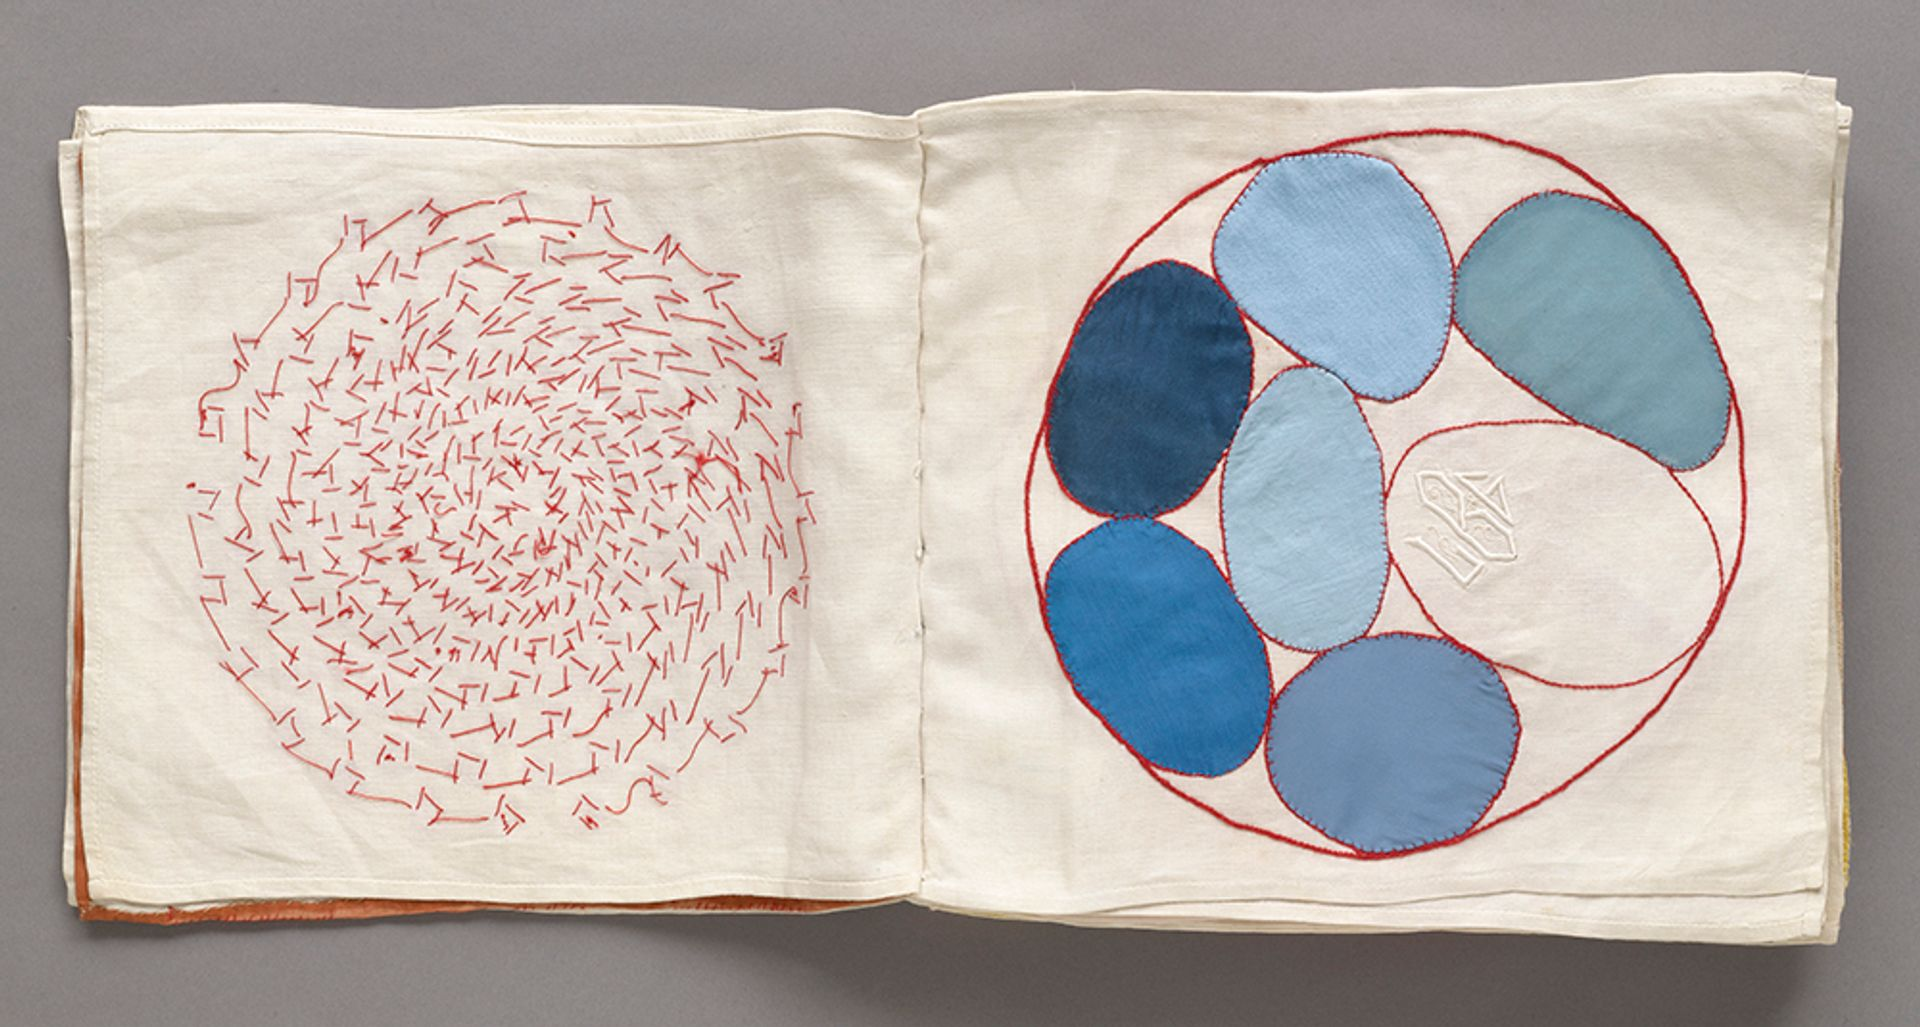 Louise Bourgeois, No. 4 of 34 from the fabric illustrated book Ode à l'Oubli (2002). The Museum of Modern Art, New York. Gift of the artist 2017 The Easton Foundation/Licensed by VAGA, NY